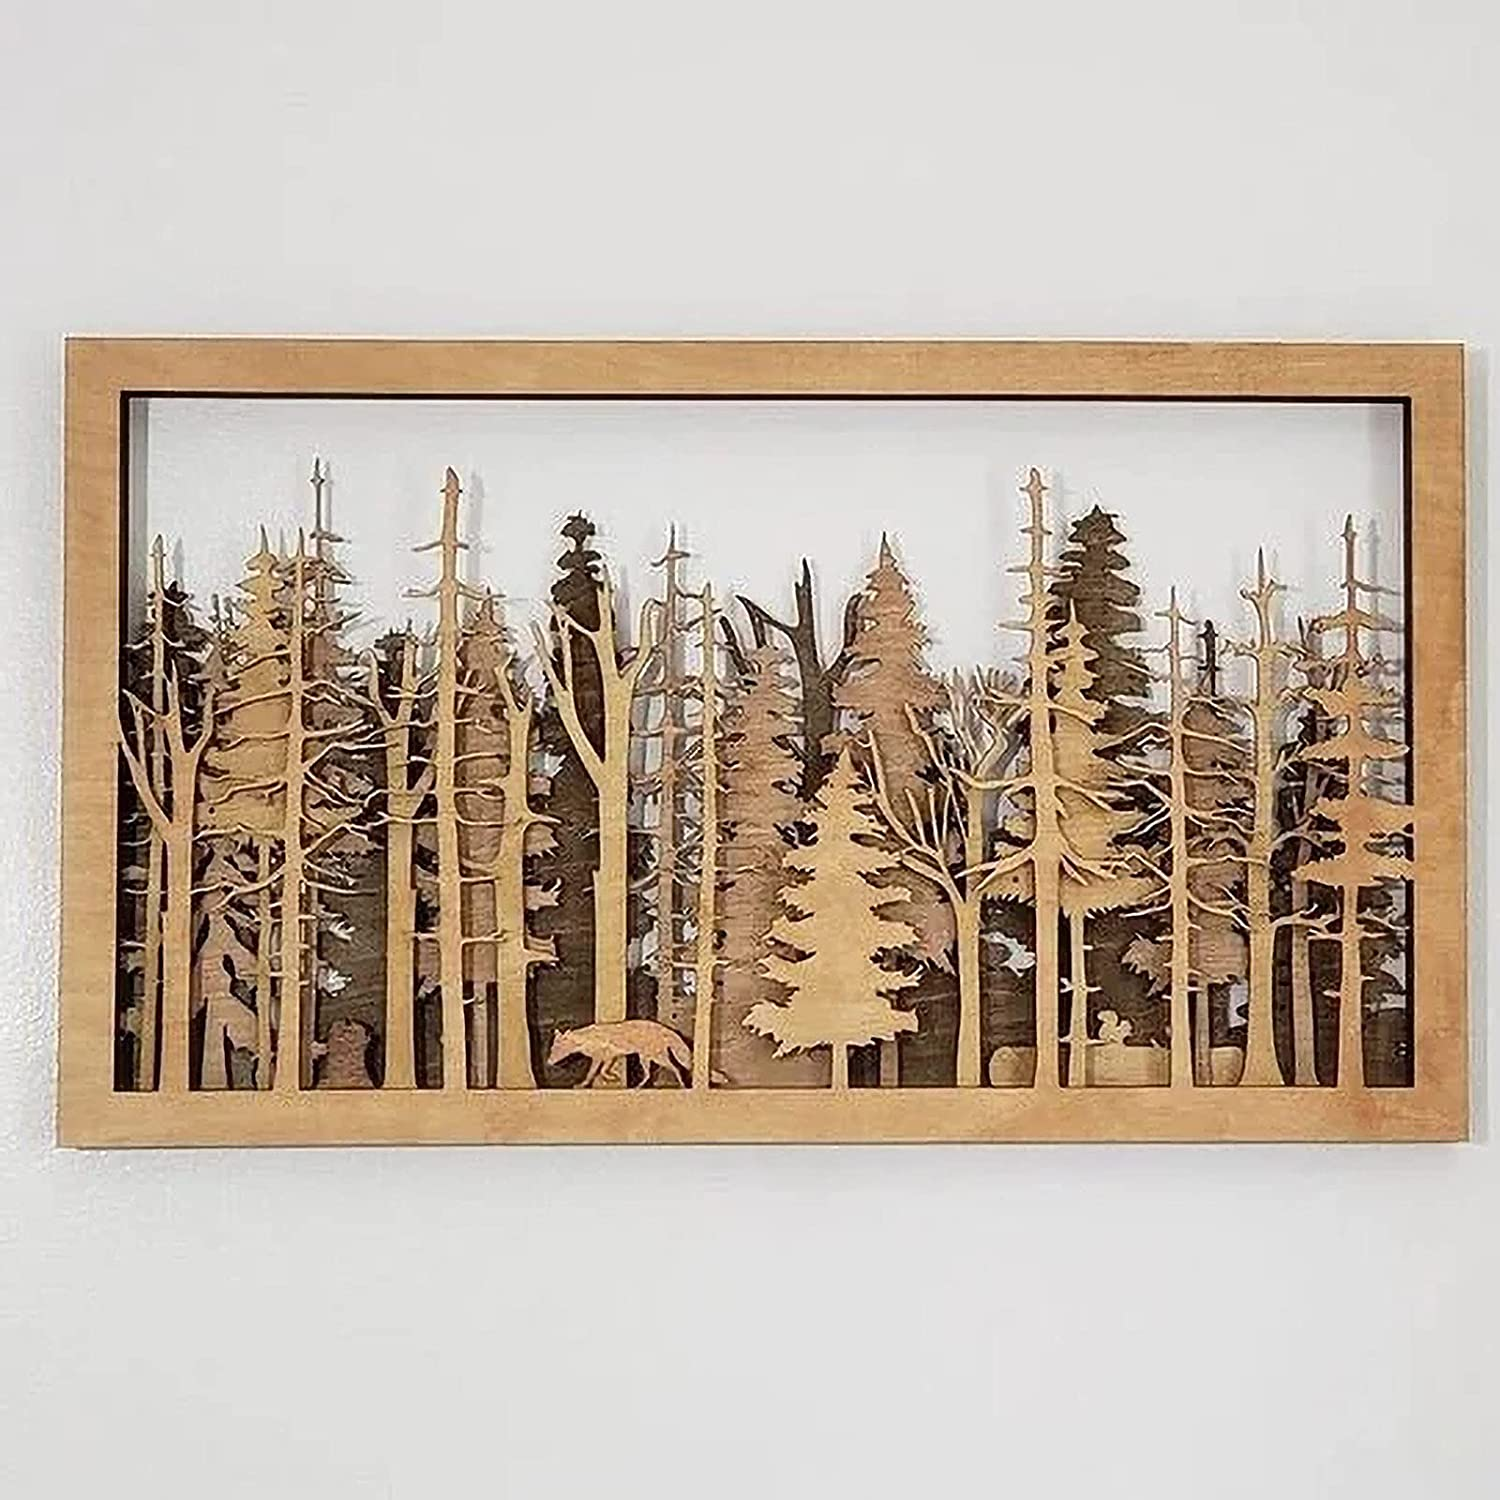 The Wide Woods - 7 Layer Wall Art - Birch Trees Carved Wall Plaque, Forest Nature Trees Fox Wilderness Multilayer Fireplace Mantel Camping Cottage Cabin Outdoors Landscape for Home Bedroom Office